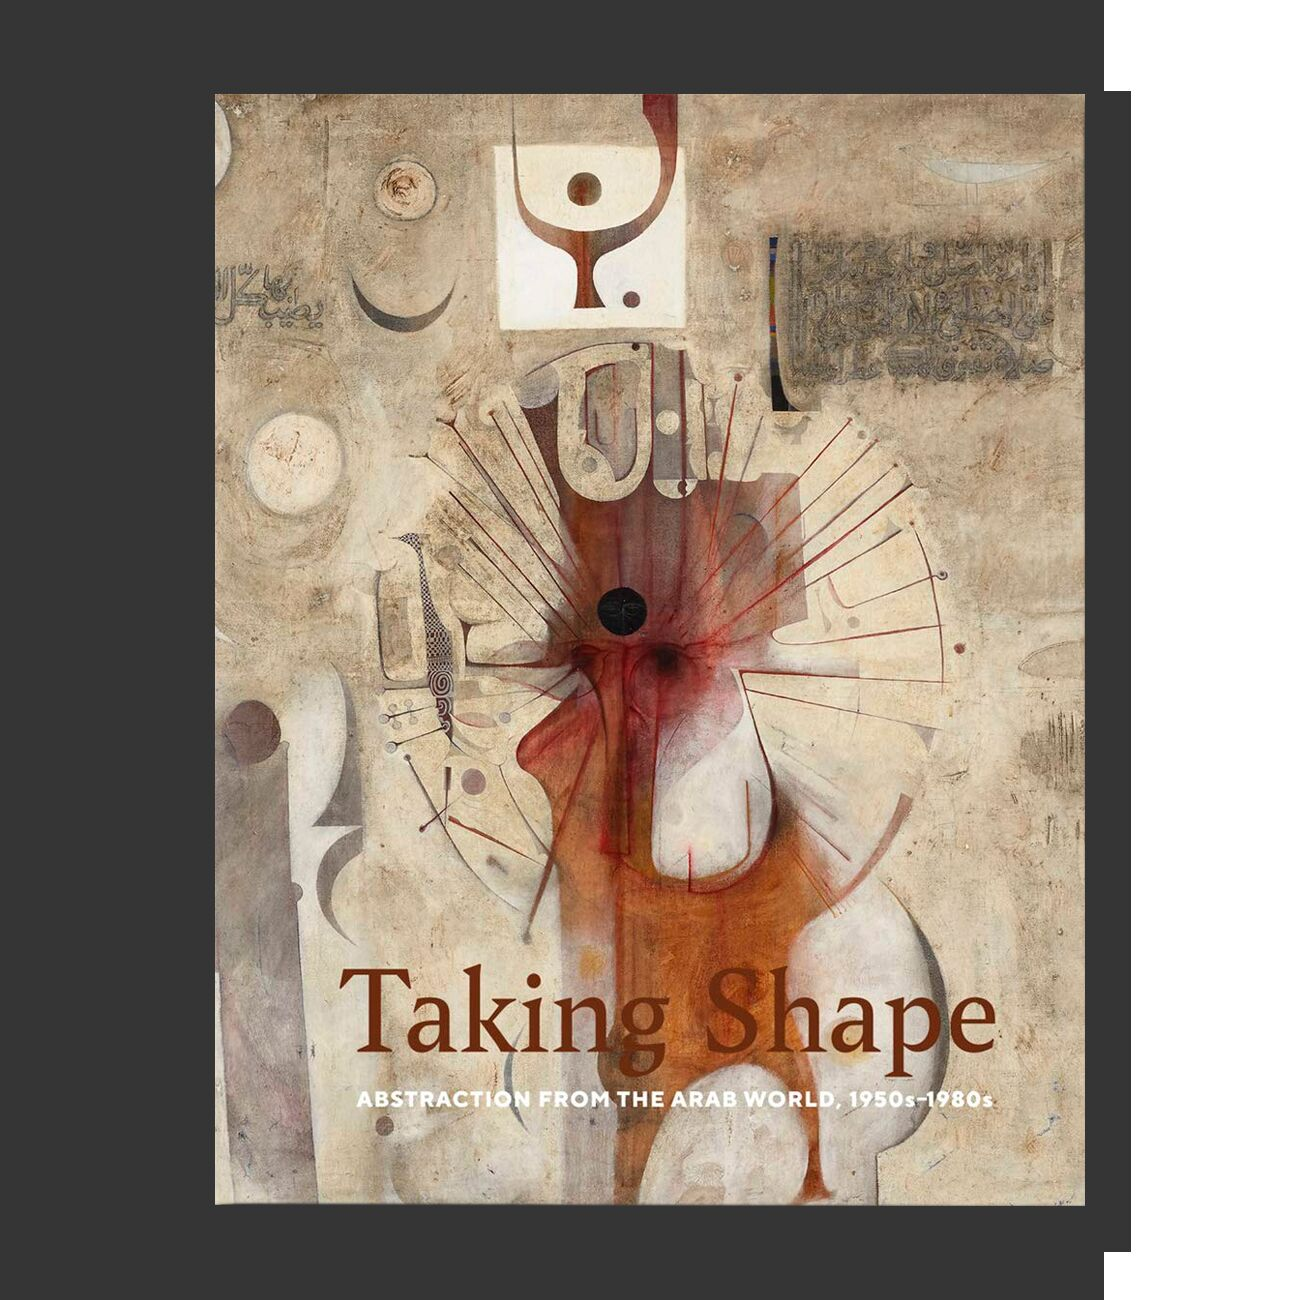 Taking Shape: Abstraction from the Arab World, 1950s–1980s